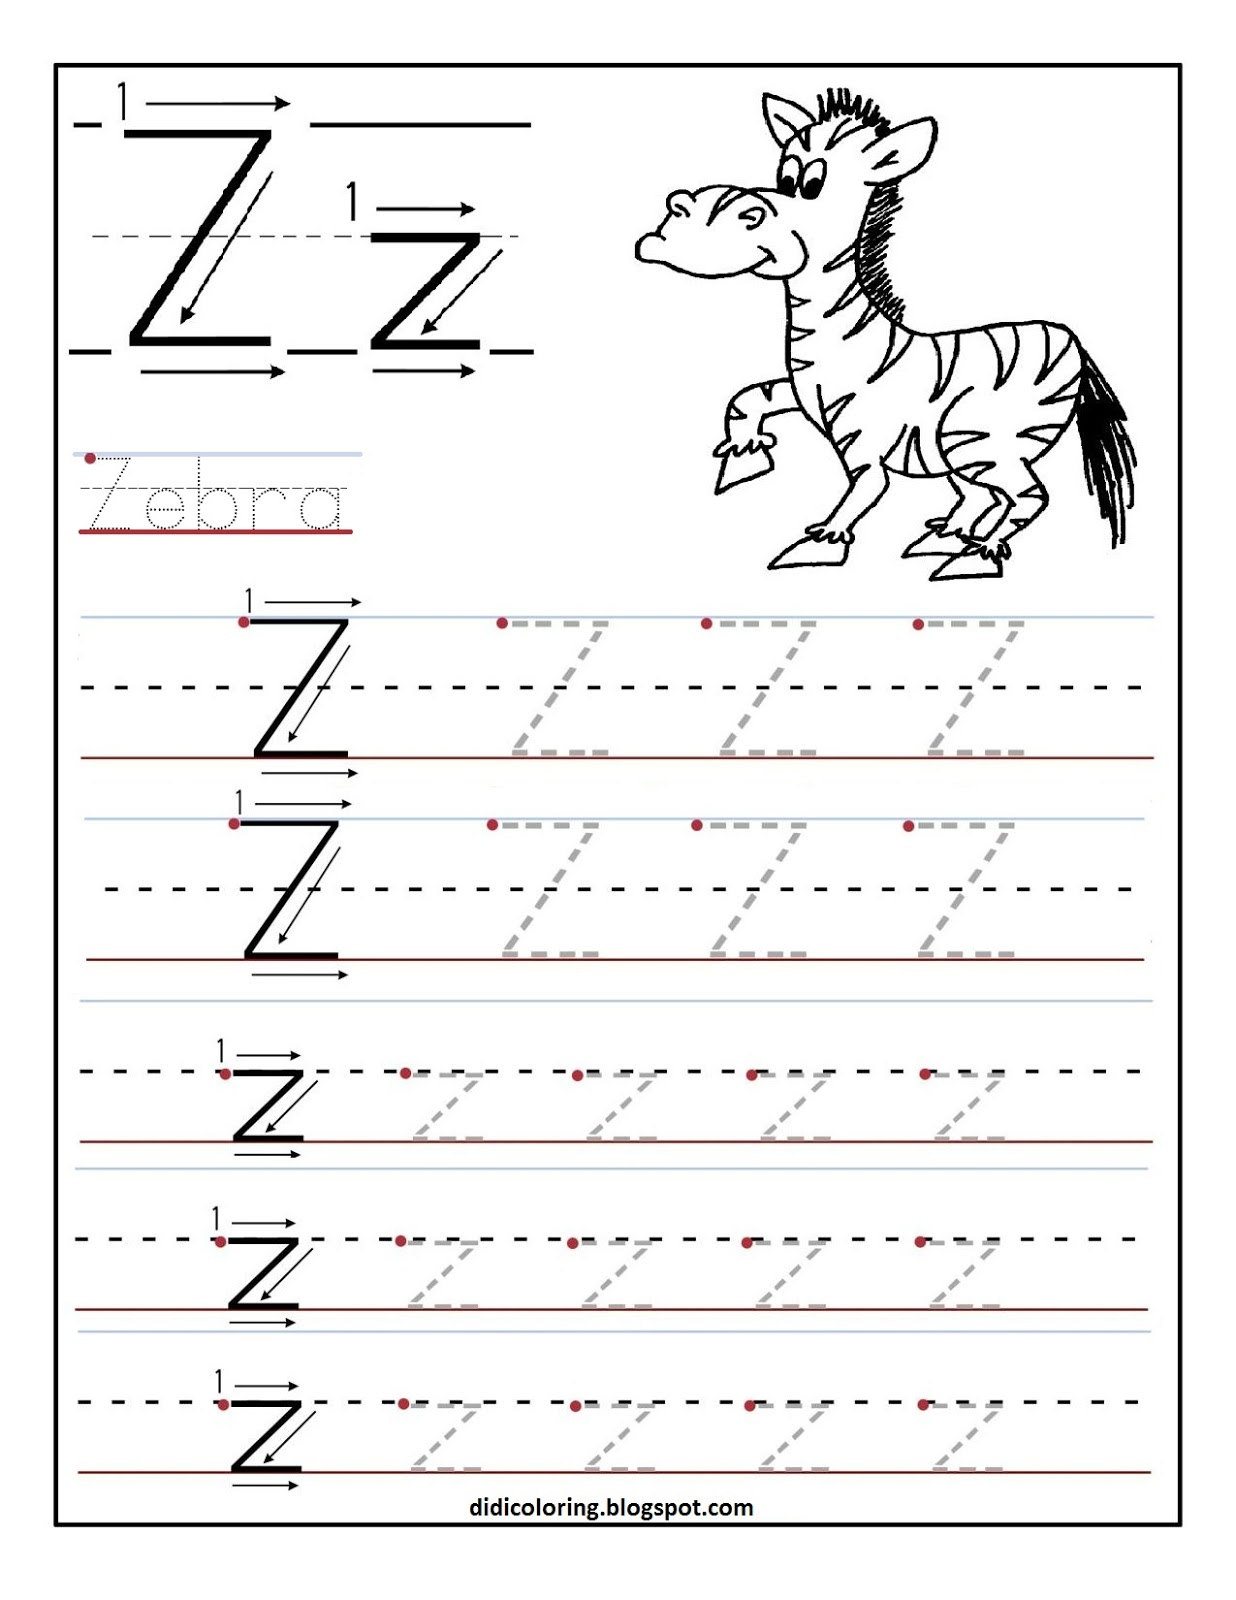 Learn to Write the Alphabet: Uppercase Manuscript Letters A-Z